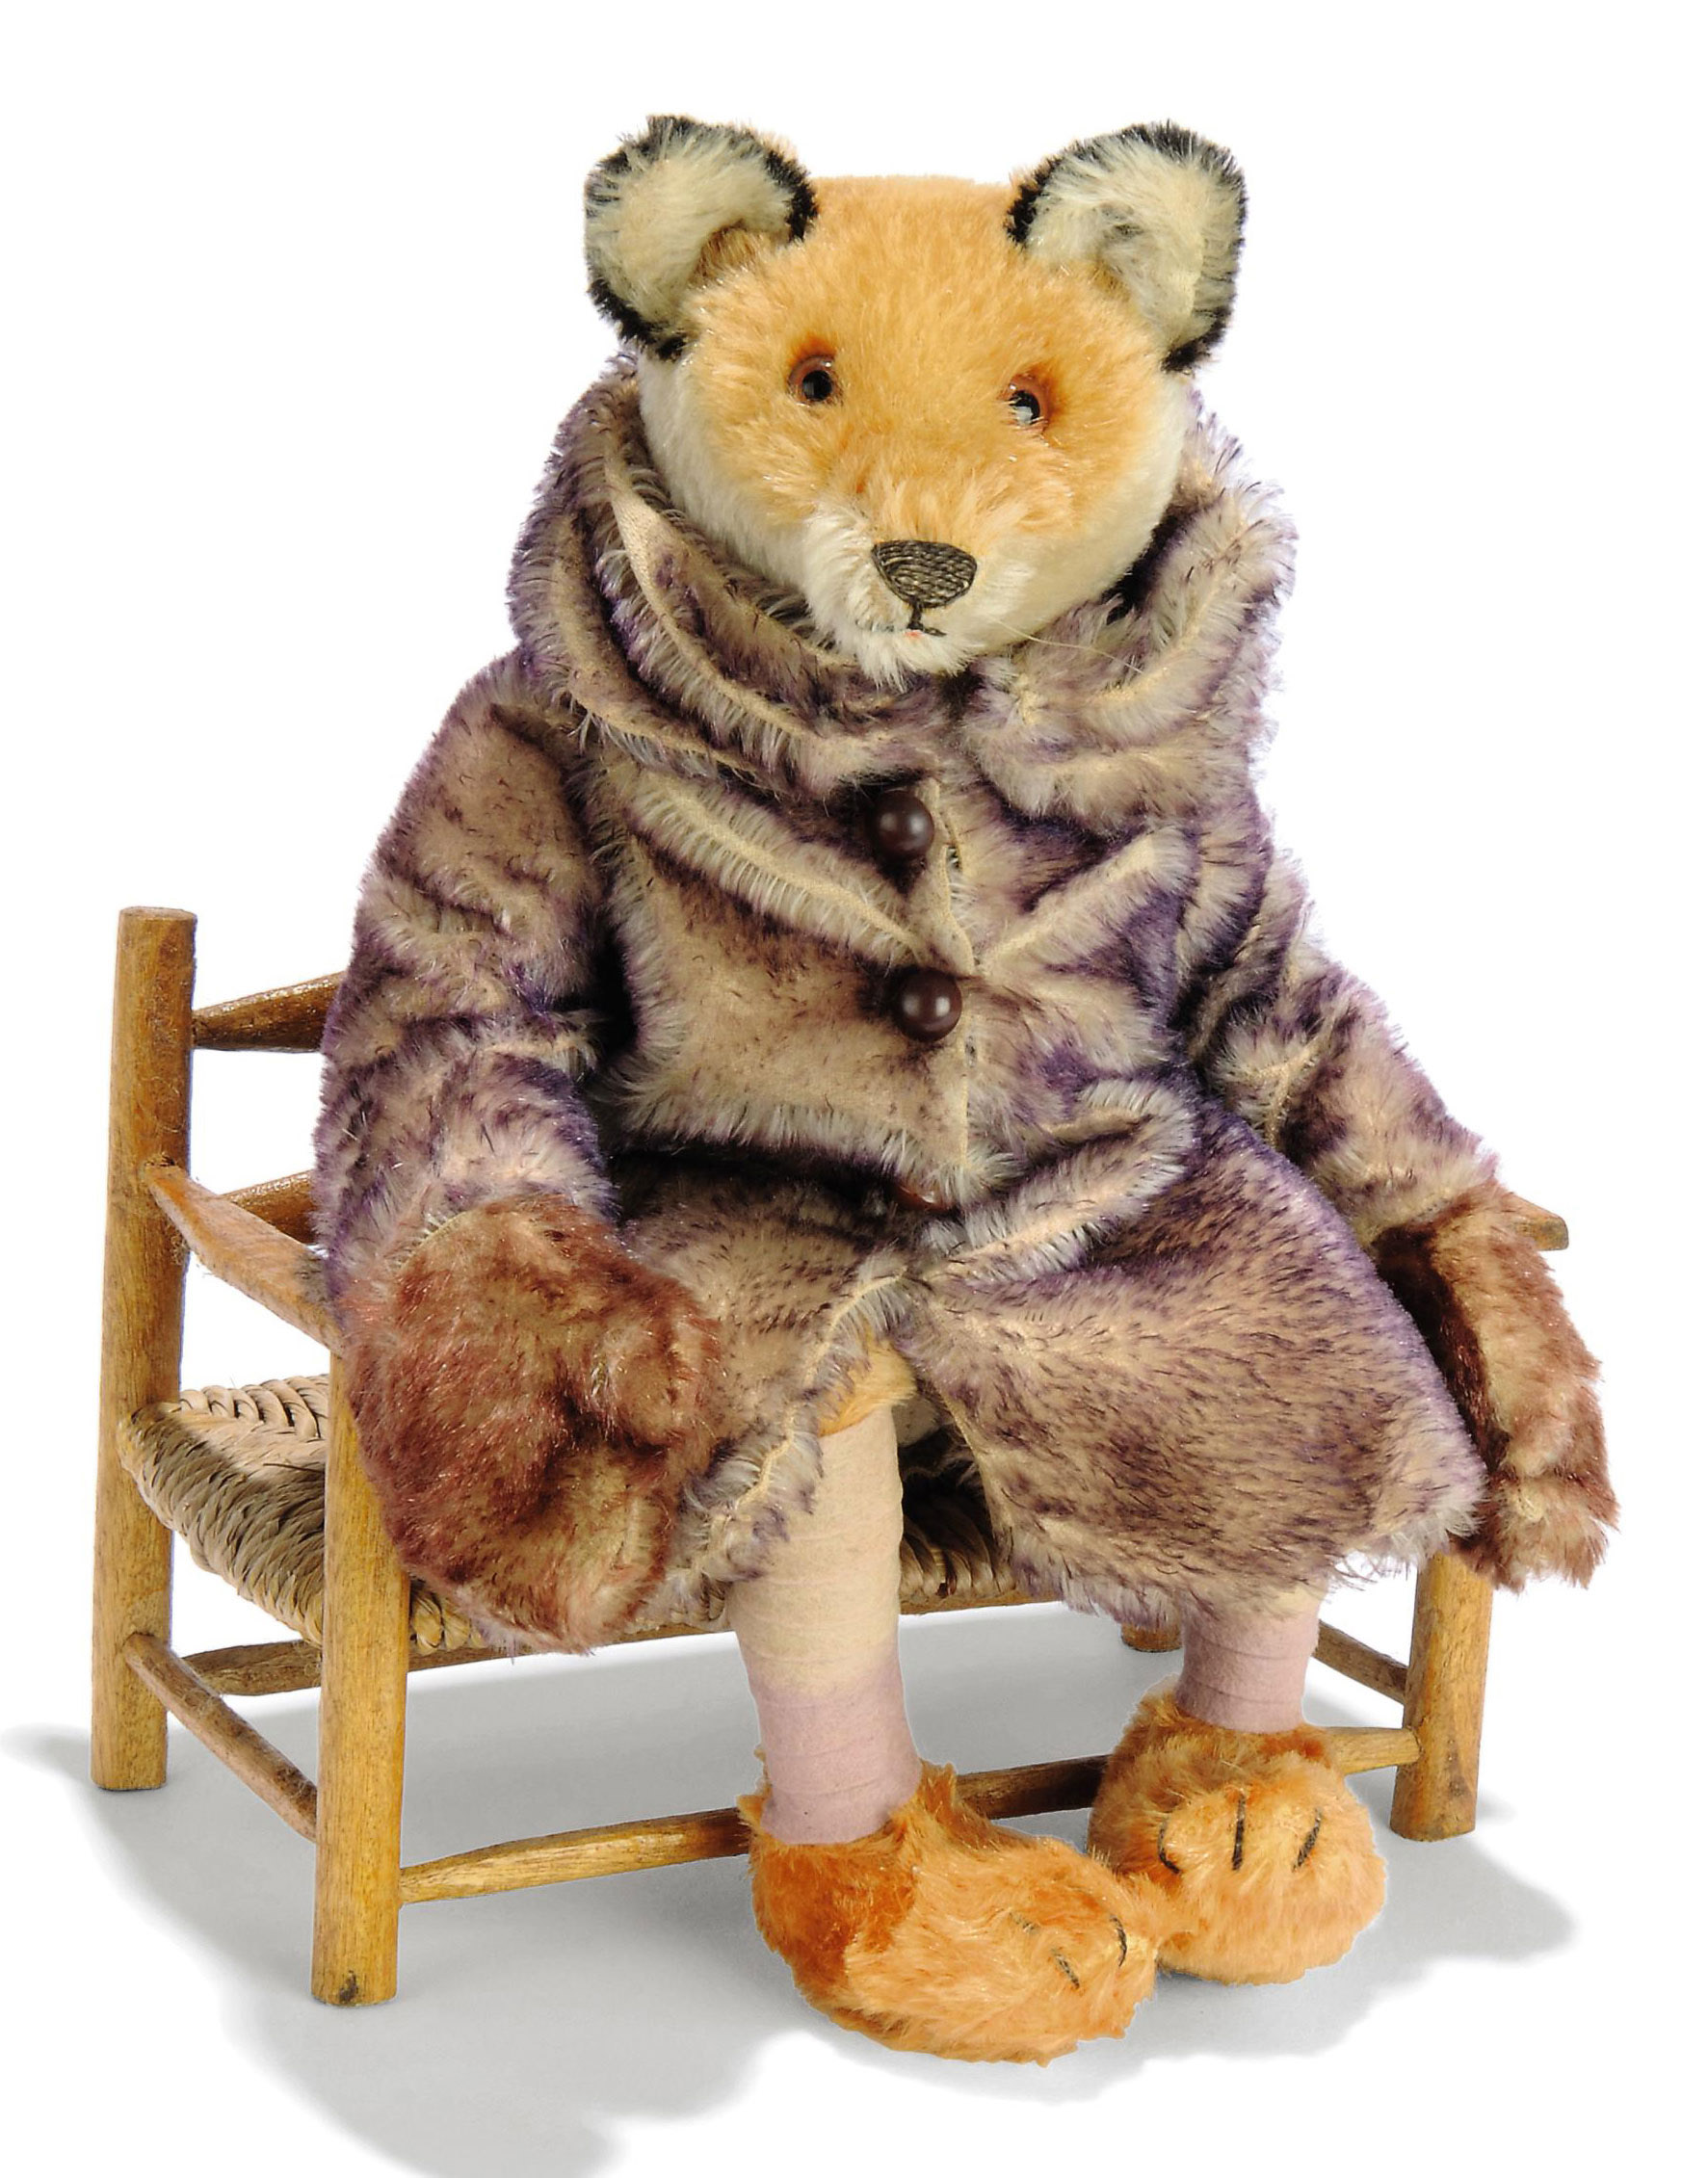 A STEIFF DISPLAY FOX IN FUR COAT, jointed, light brown and white mohair, brown and black glass eyes, black stitching, remains of whiskers, cloth body, legs bent in a seated position, purple-tipped white mohair coat with large collar and four brown buttons, brown-tipped mohair mittens, purple felt spats and FF button, 1920s --14in. (35.5cm.) high (slight fading to head)  (2)